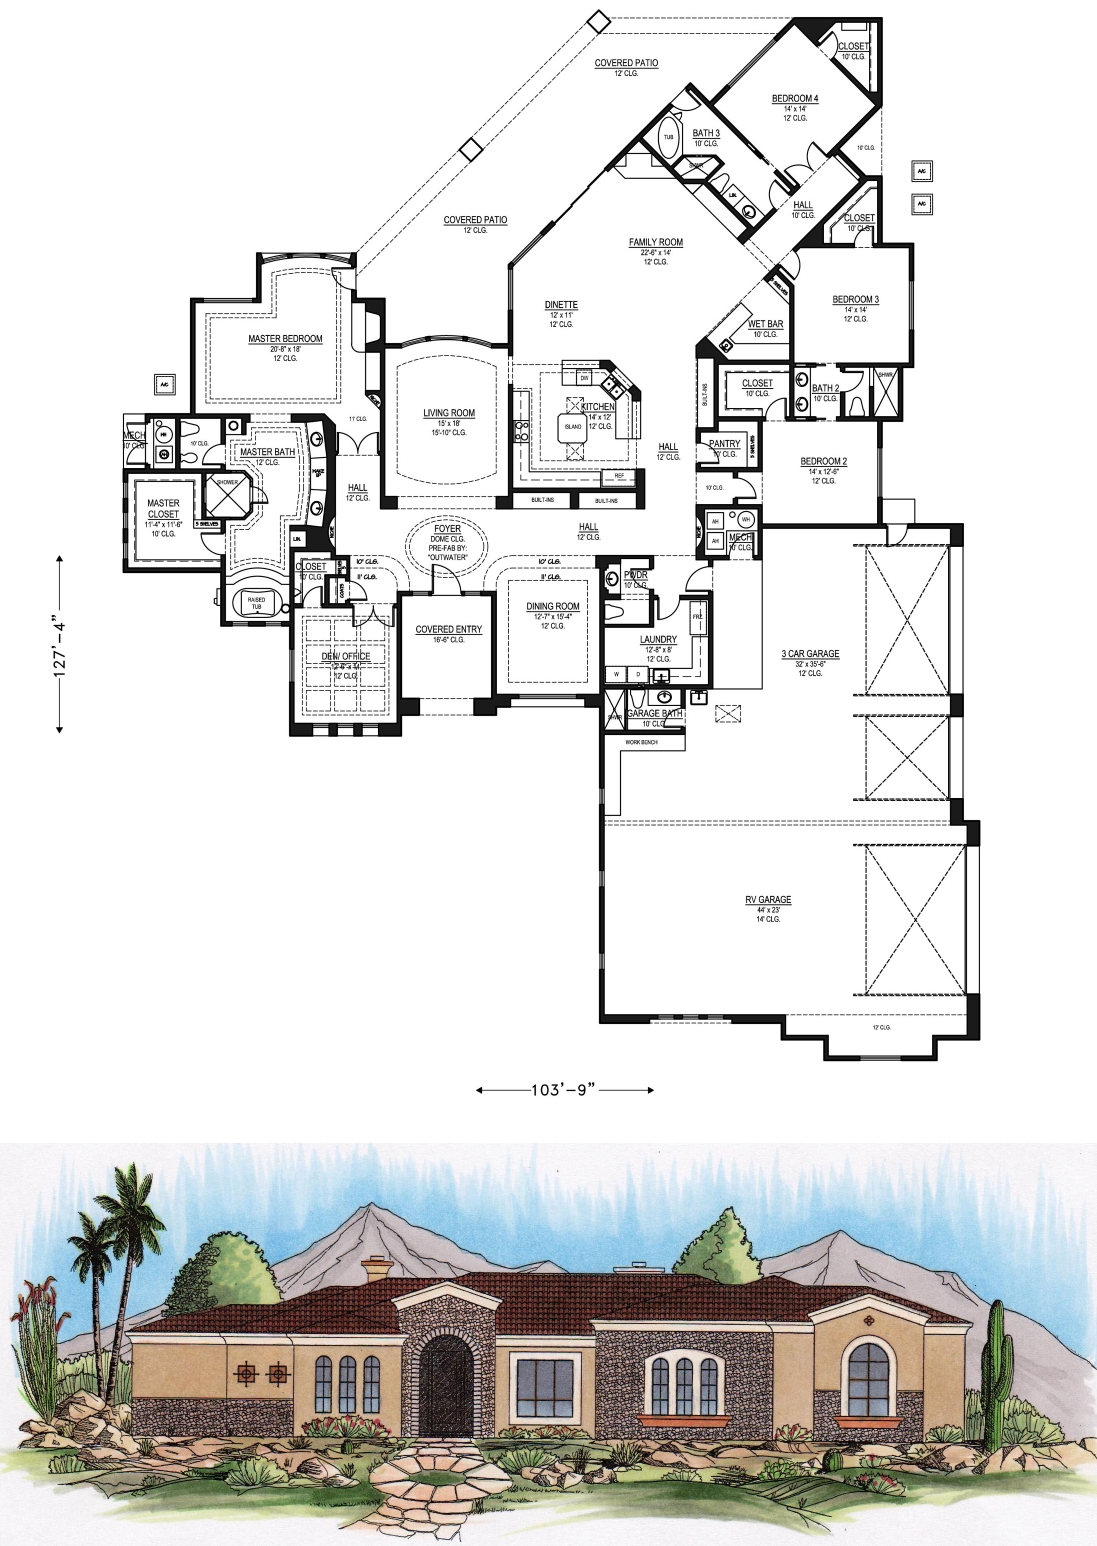 4500 to 6000 square feet 4500 sq ft house plans